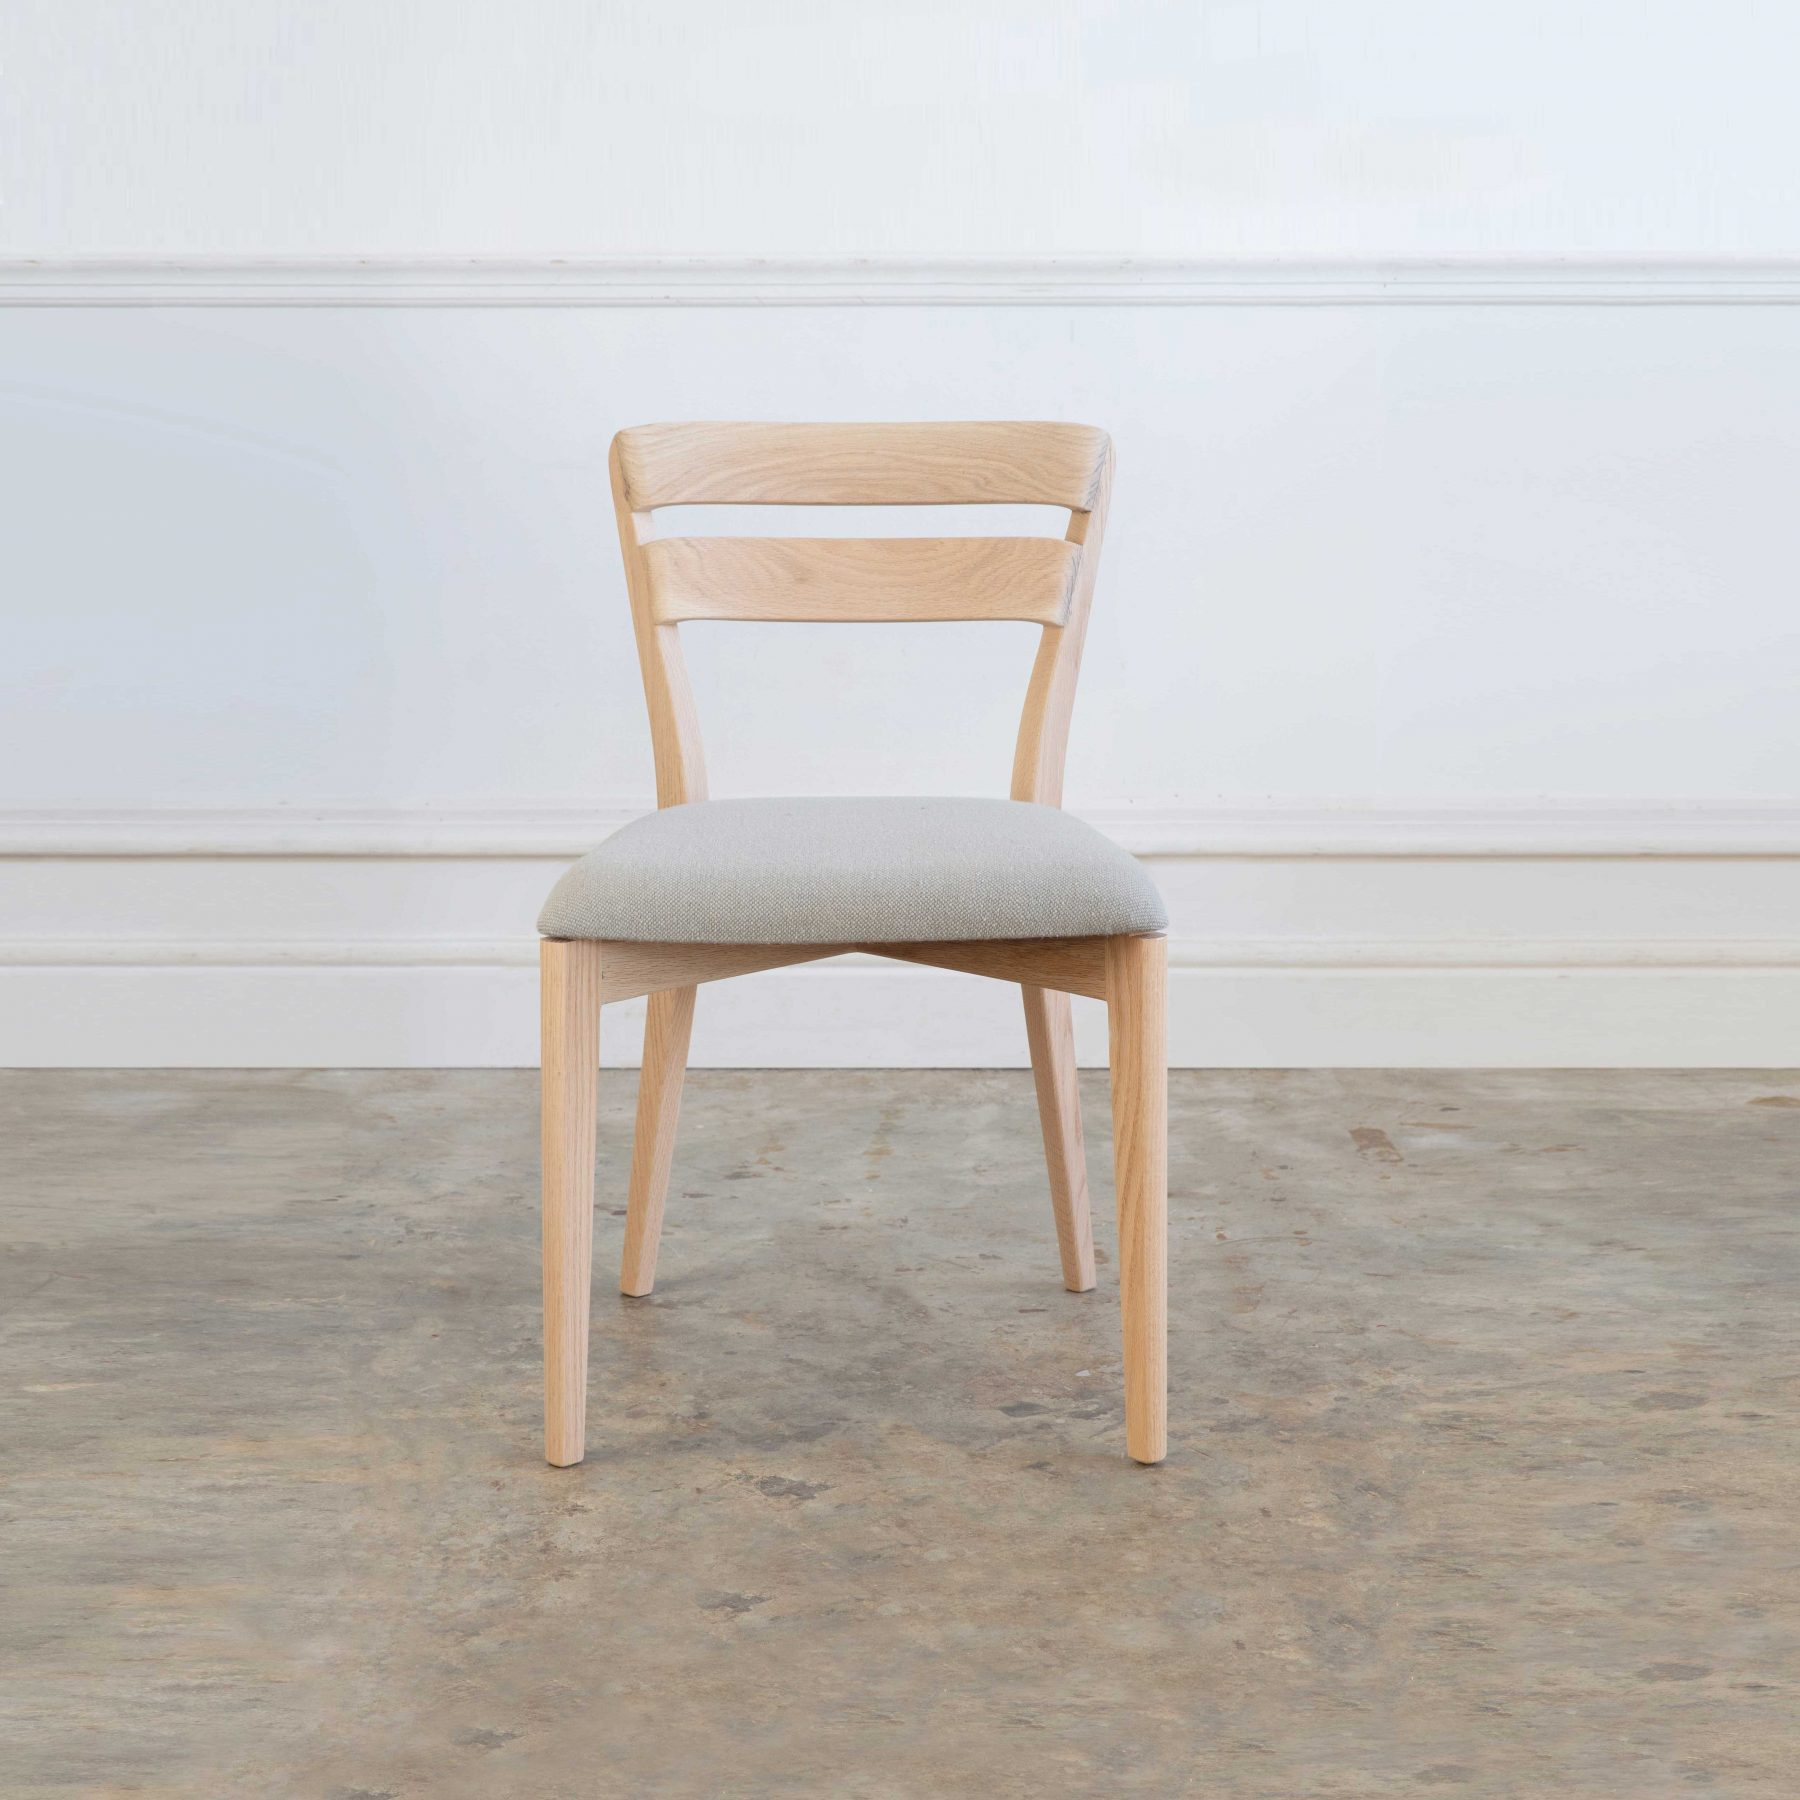 Ivor Chair 003 – NEW